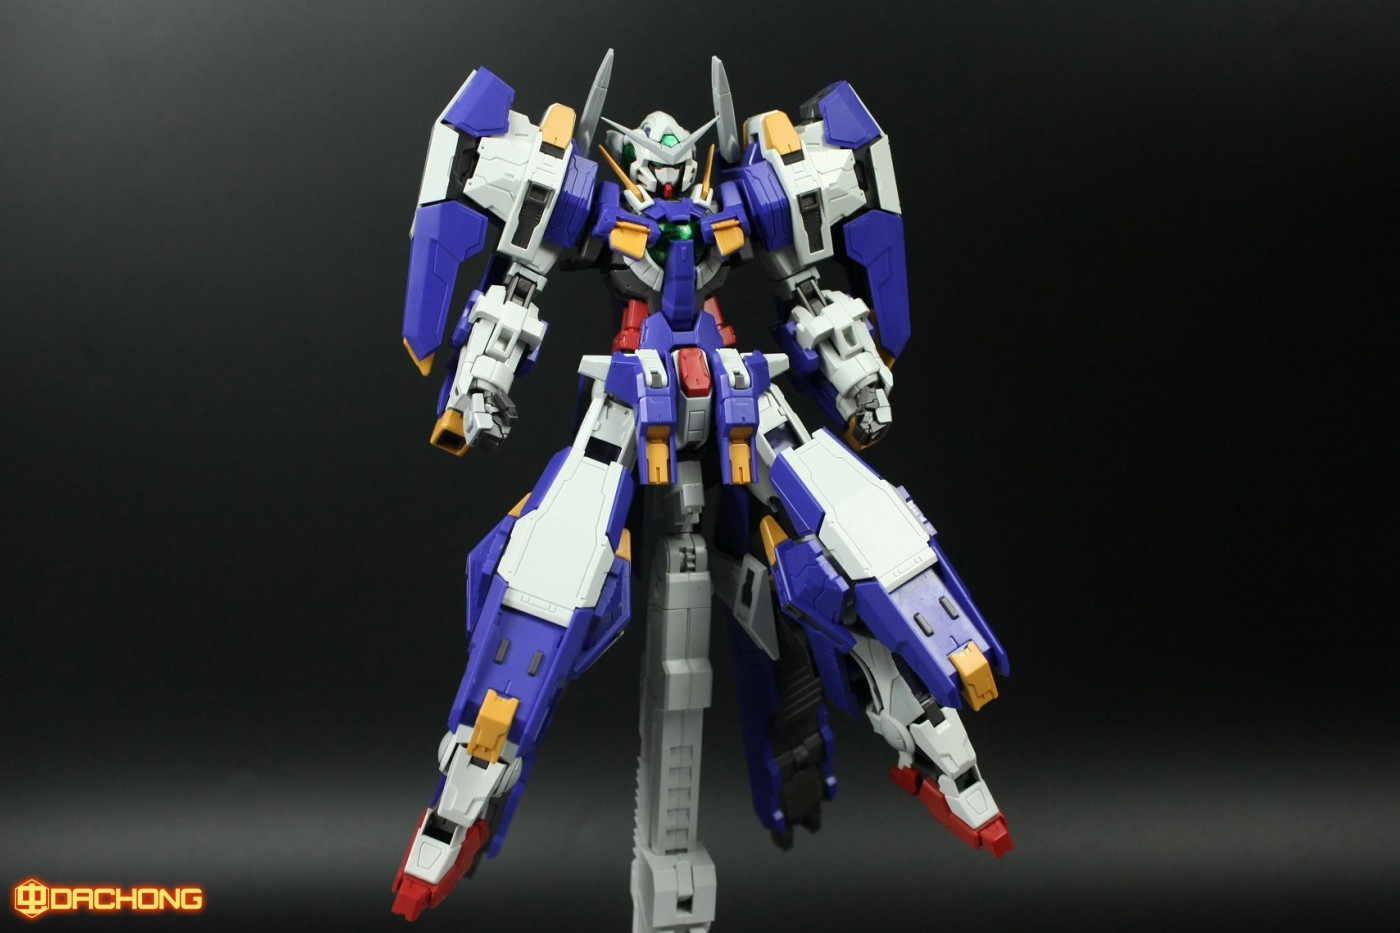 S254_MG_exia_HS_review_inask_088.jpg